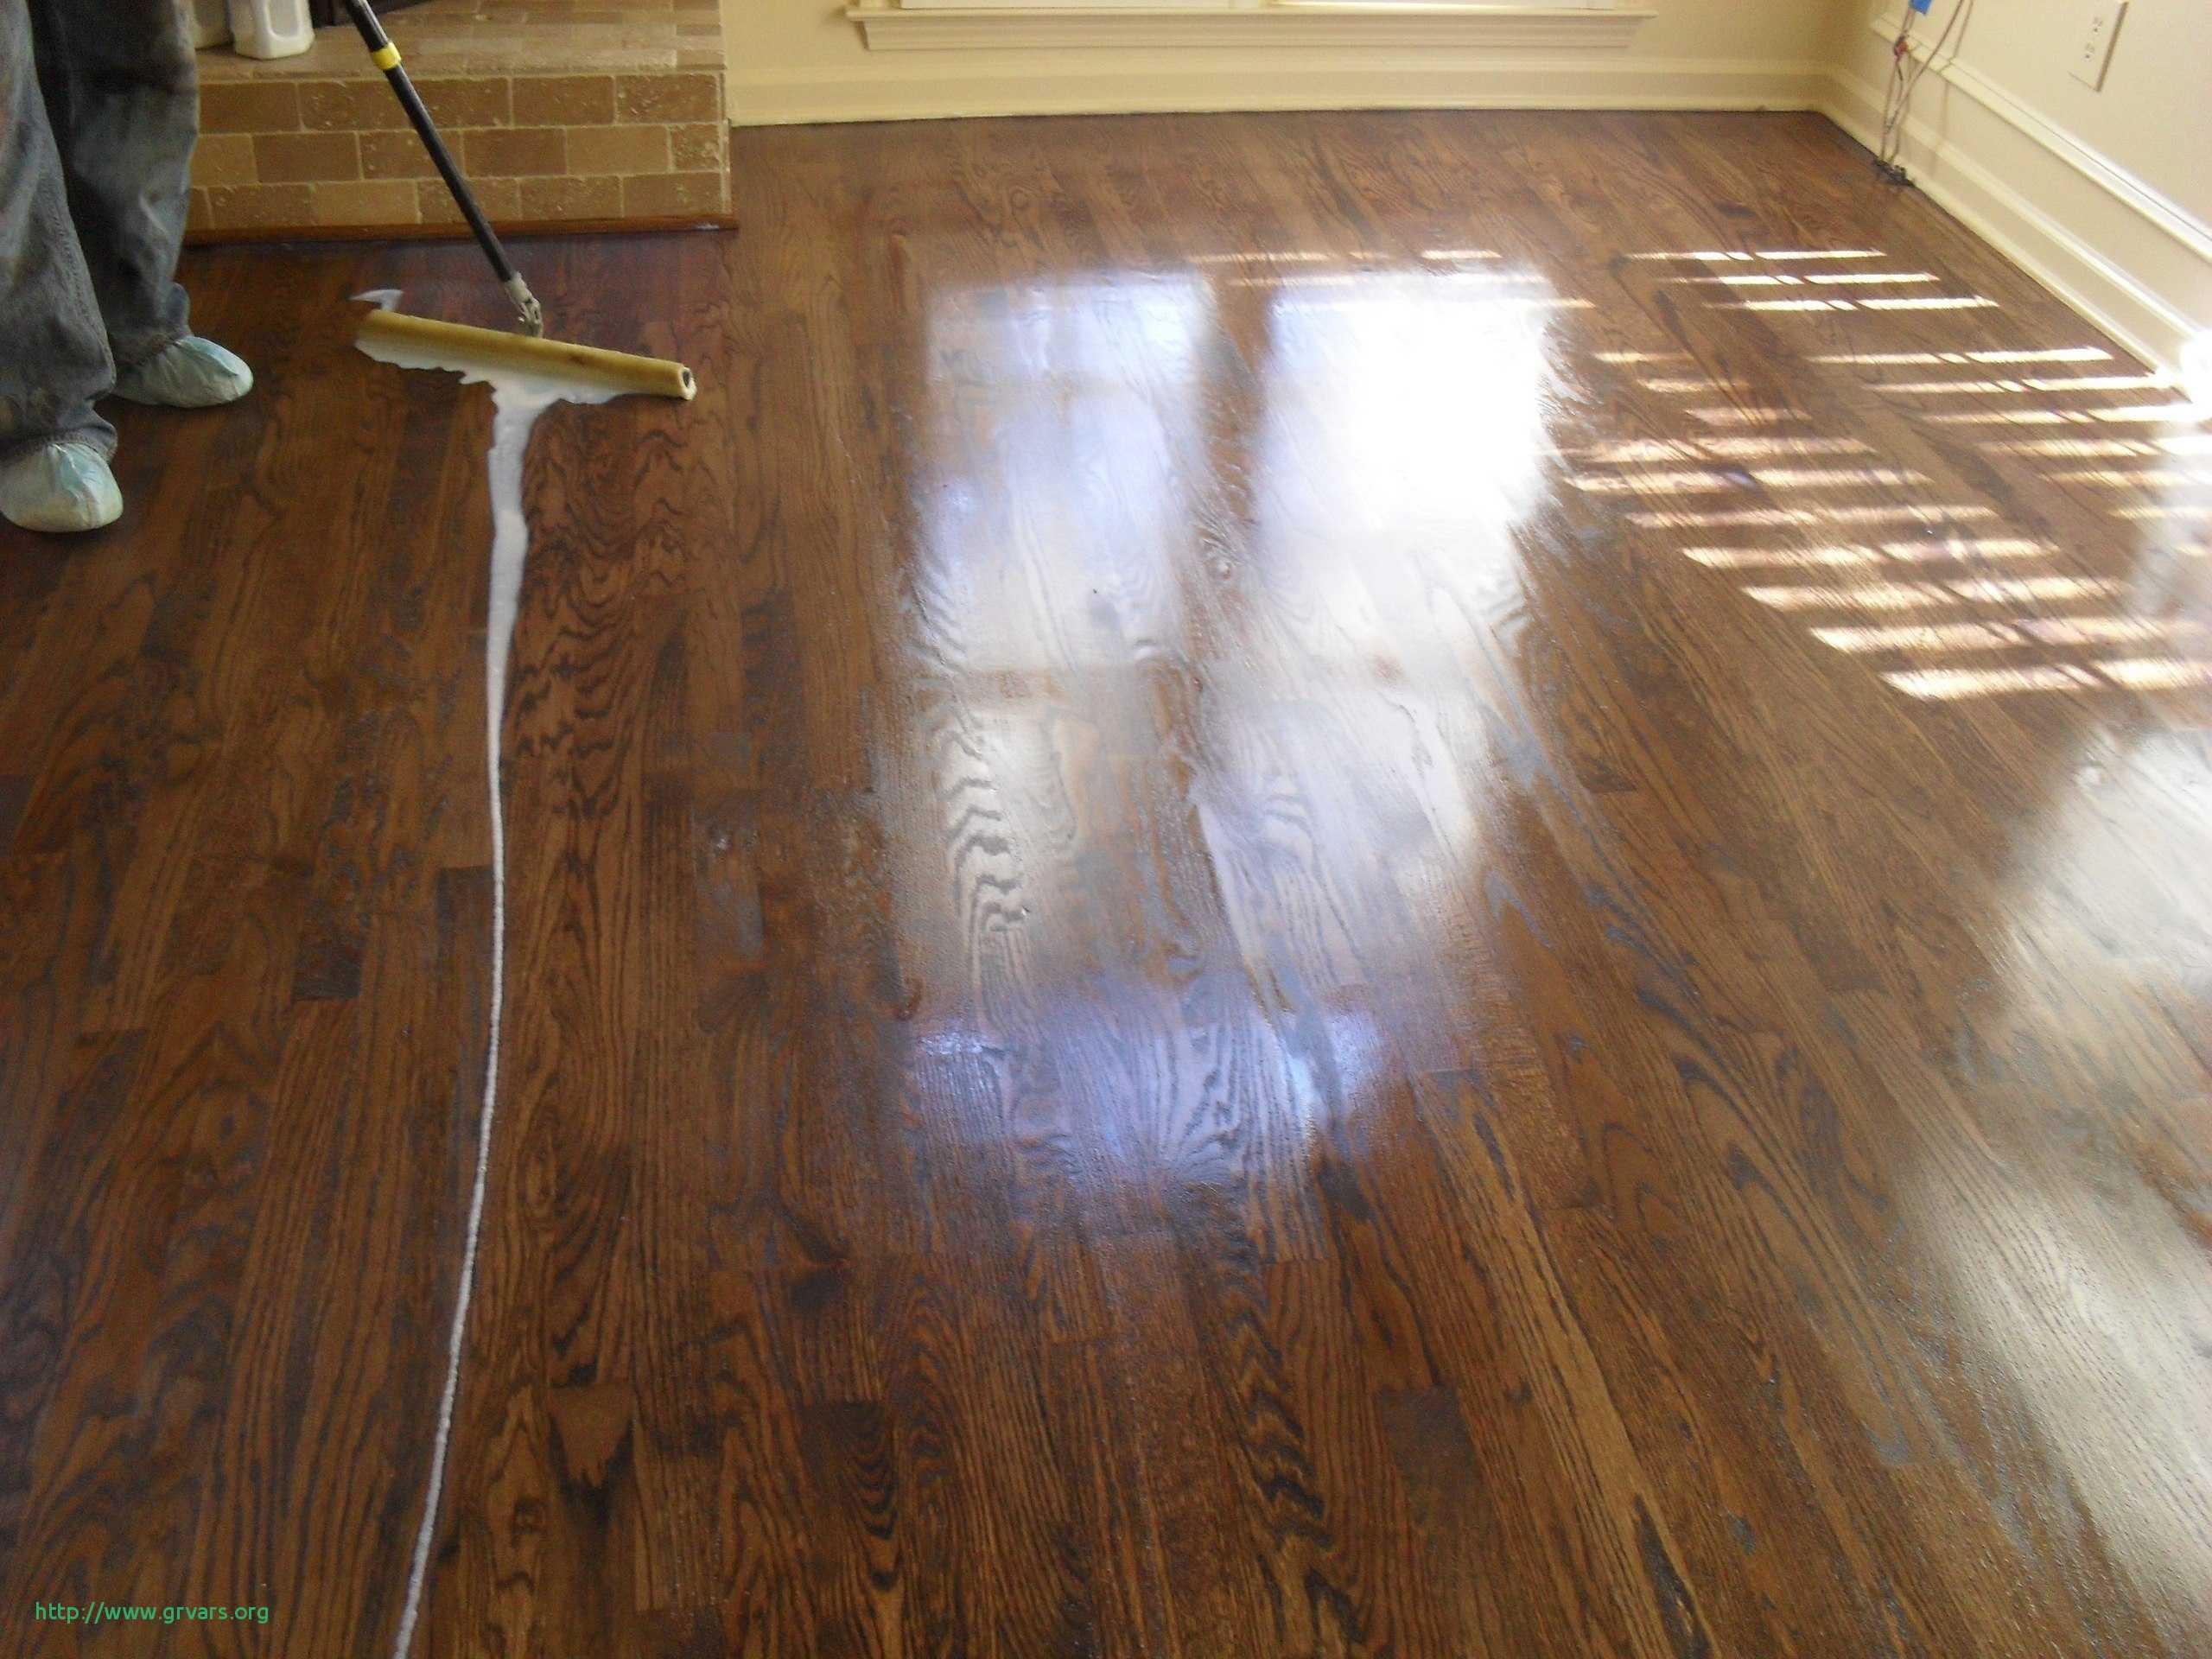 old country hardwood flooring calgary of image number 6563 from post restoring old hardwood floors will within nouveau hardwood floors yourself ideas restoring old will inspirant redo without sanding podemosleganes lovely refinishingod pet